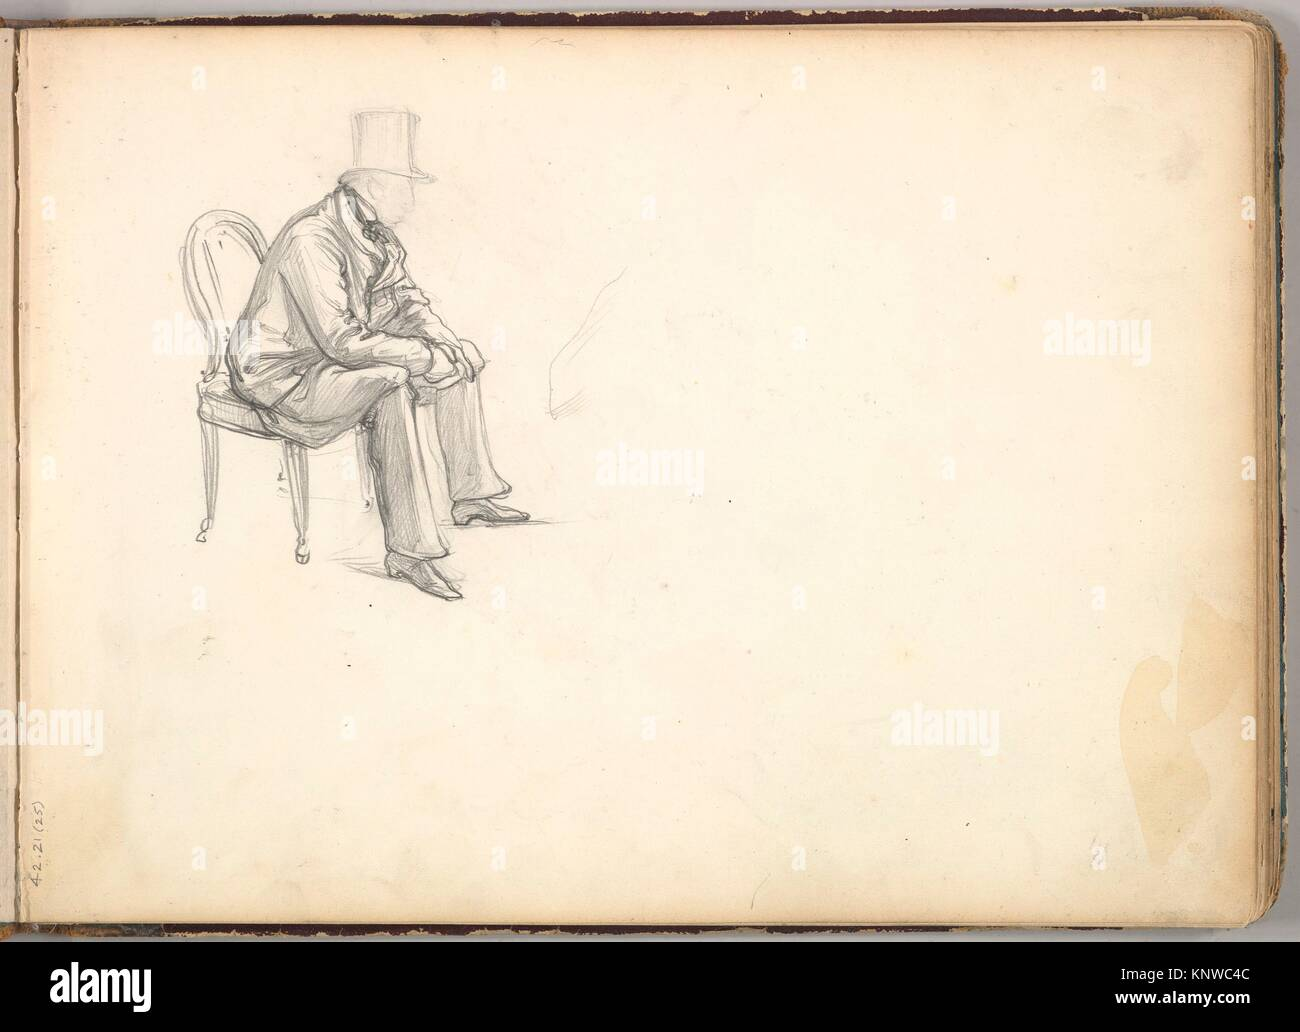 Man Seated on a Chair (in Sketch Book With Drawings on Twenty-six Leaves). Artist Frederic Lord Leighton (British Scarborough 1830-1896 London);  sc 1 st  Alamy & Man Seated on a Chair (in Sketch Book With Drawings on Twenty-six ...